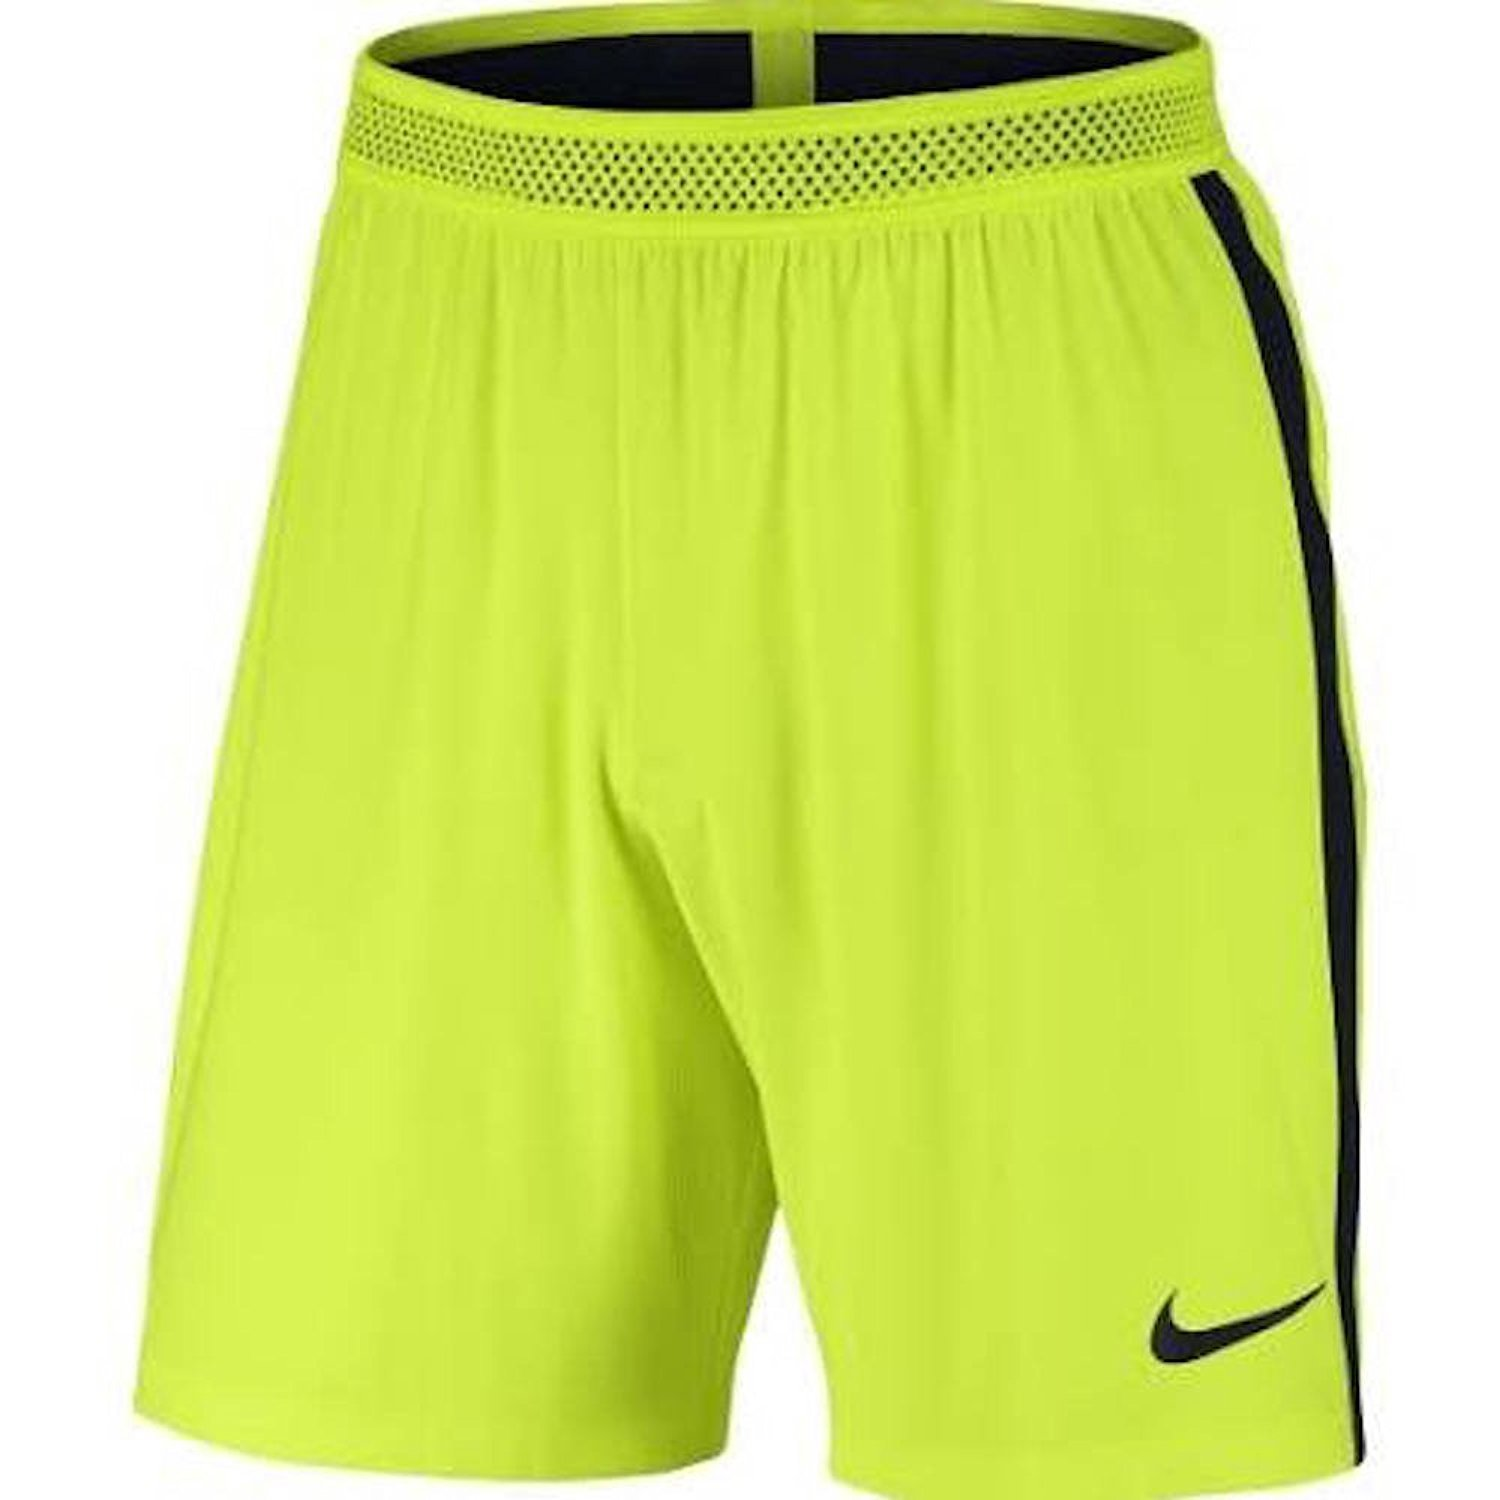 Amazon.com : Nike Strike Aeroswift Men's Soccer Shorts Volt Yellow ...